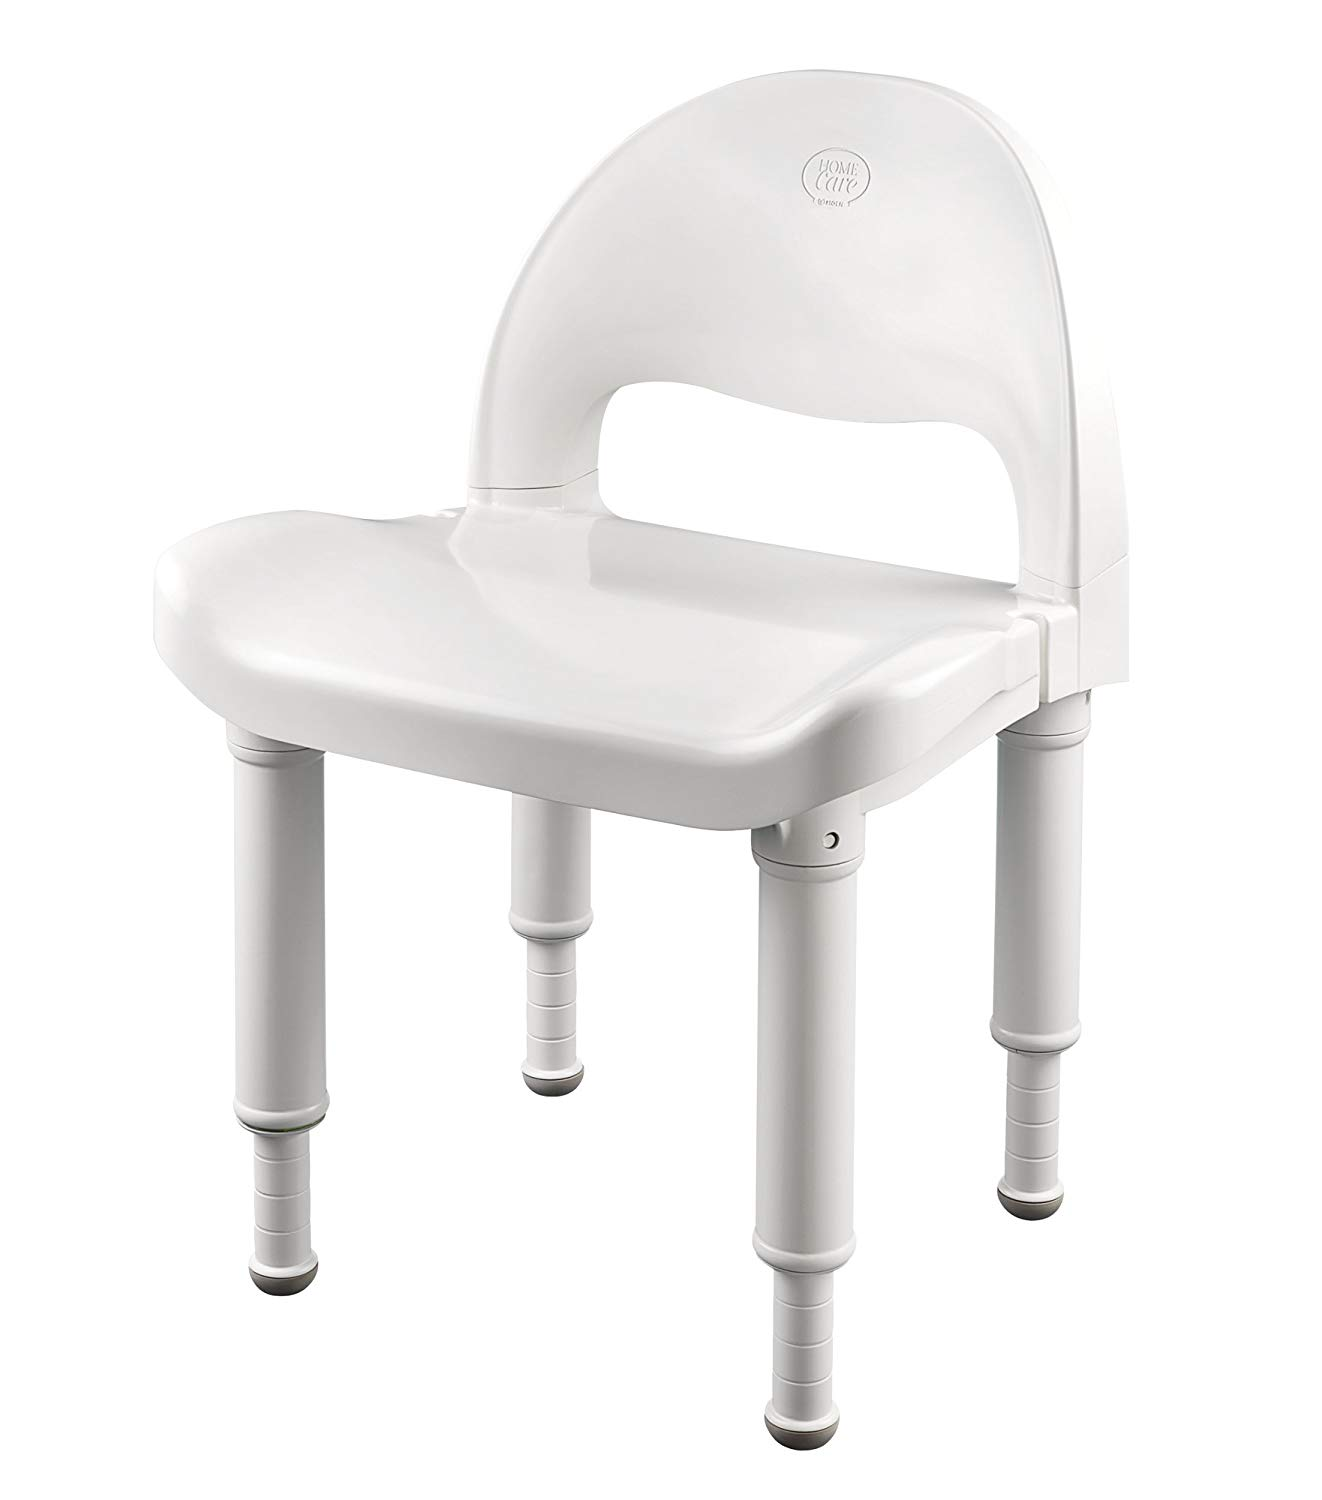 moen shower chair DN7064 Bath Safety